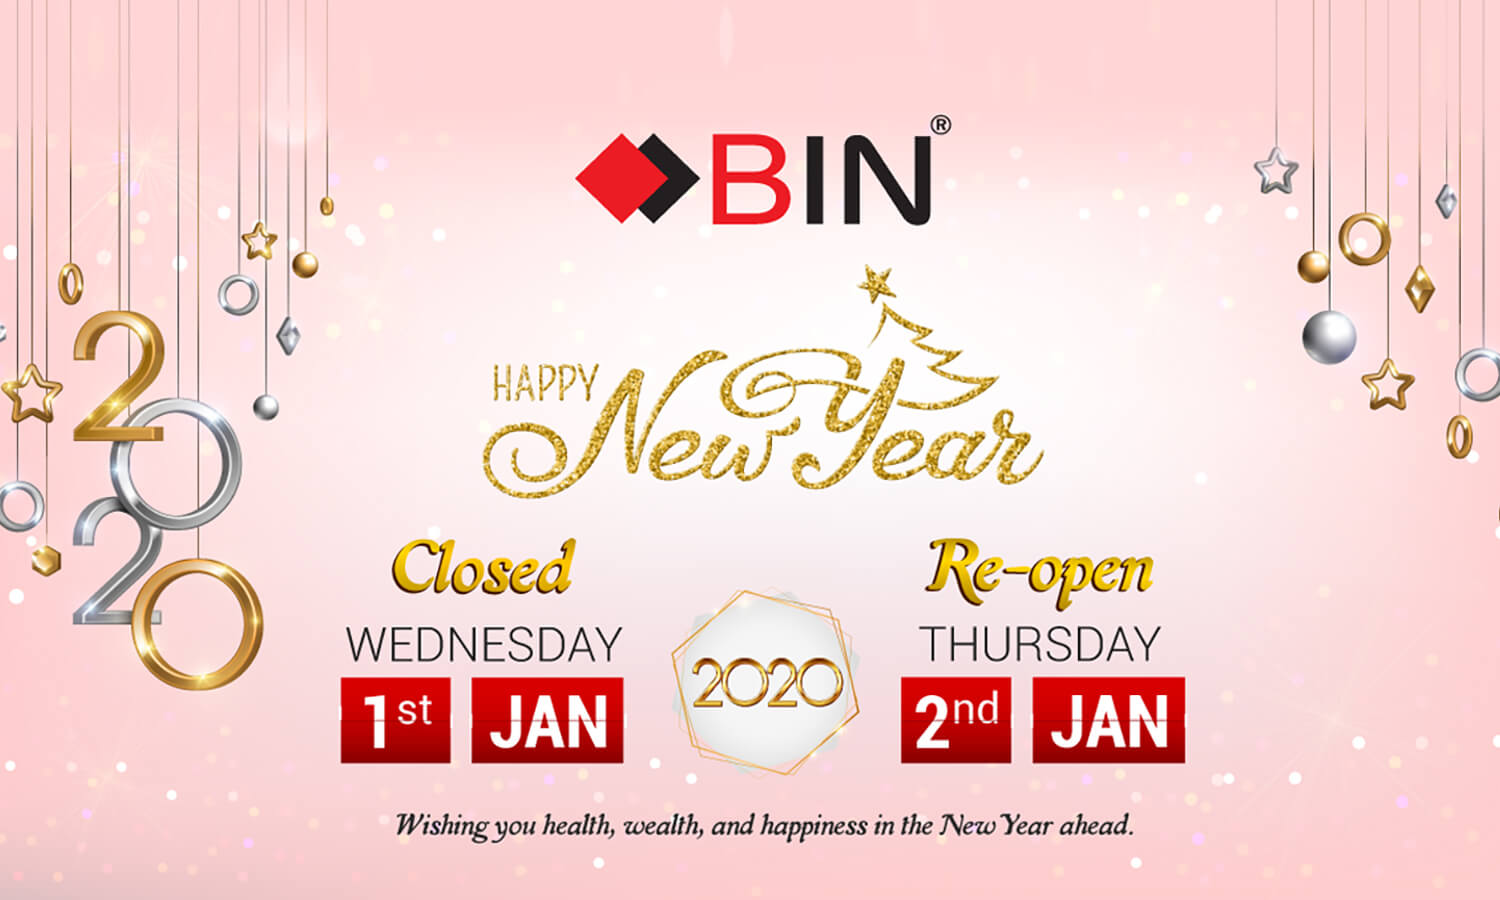 New Year Closure Notice 2020